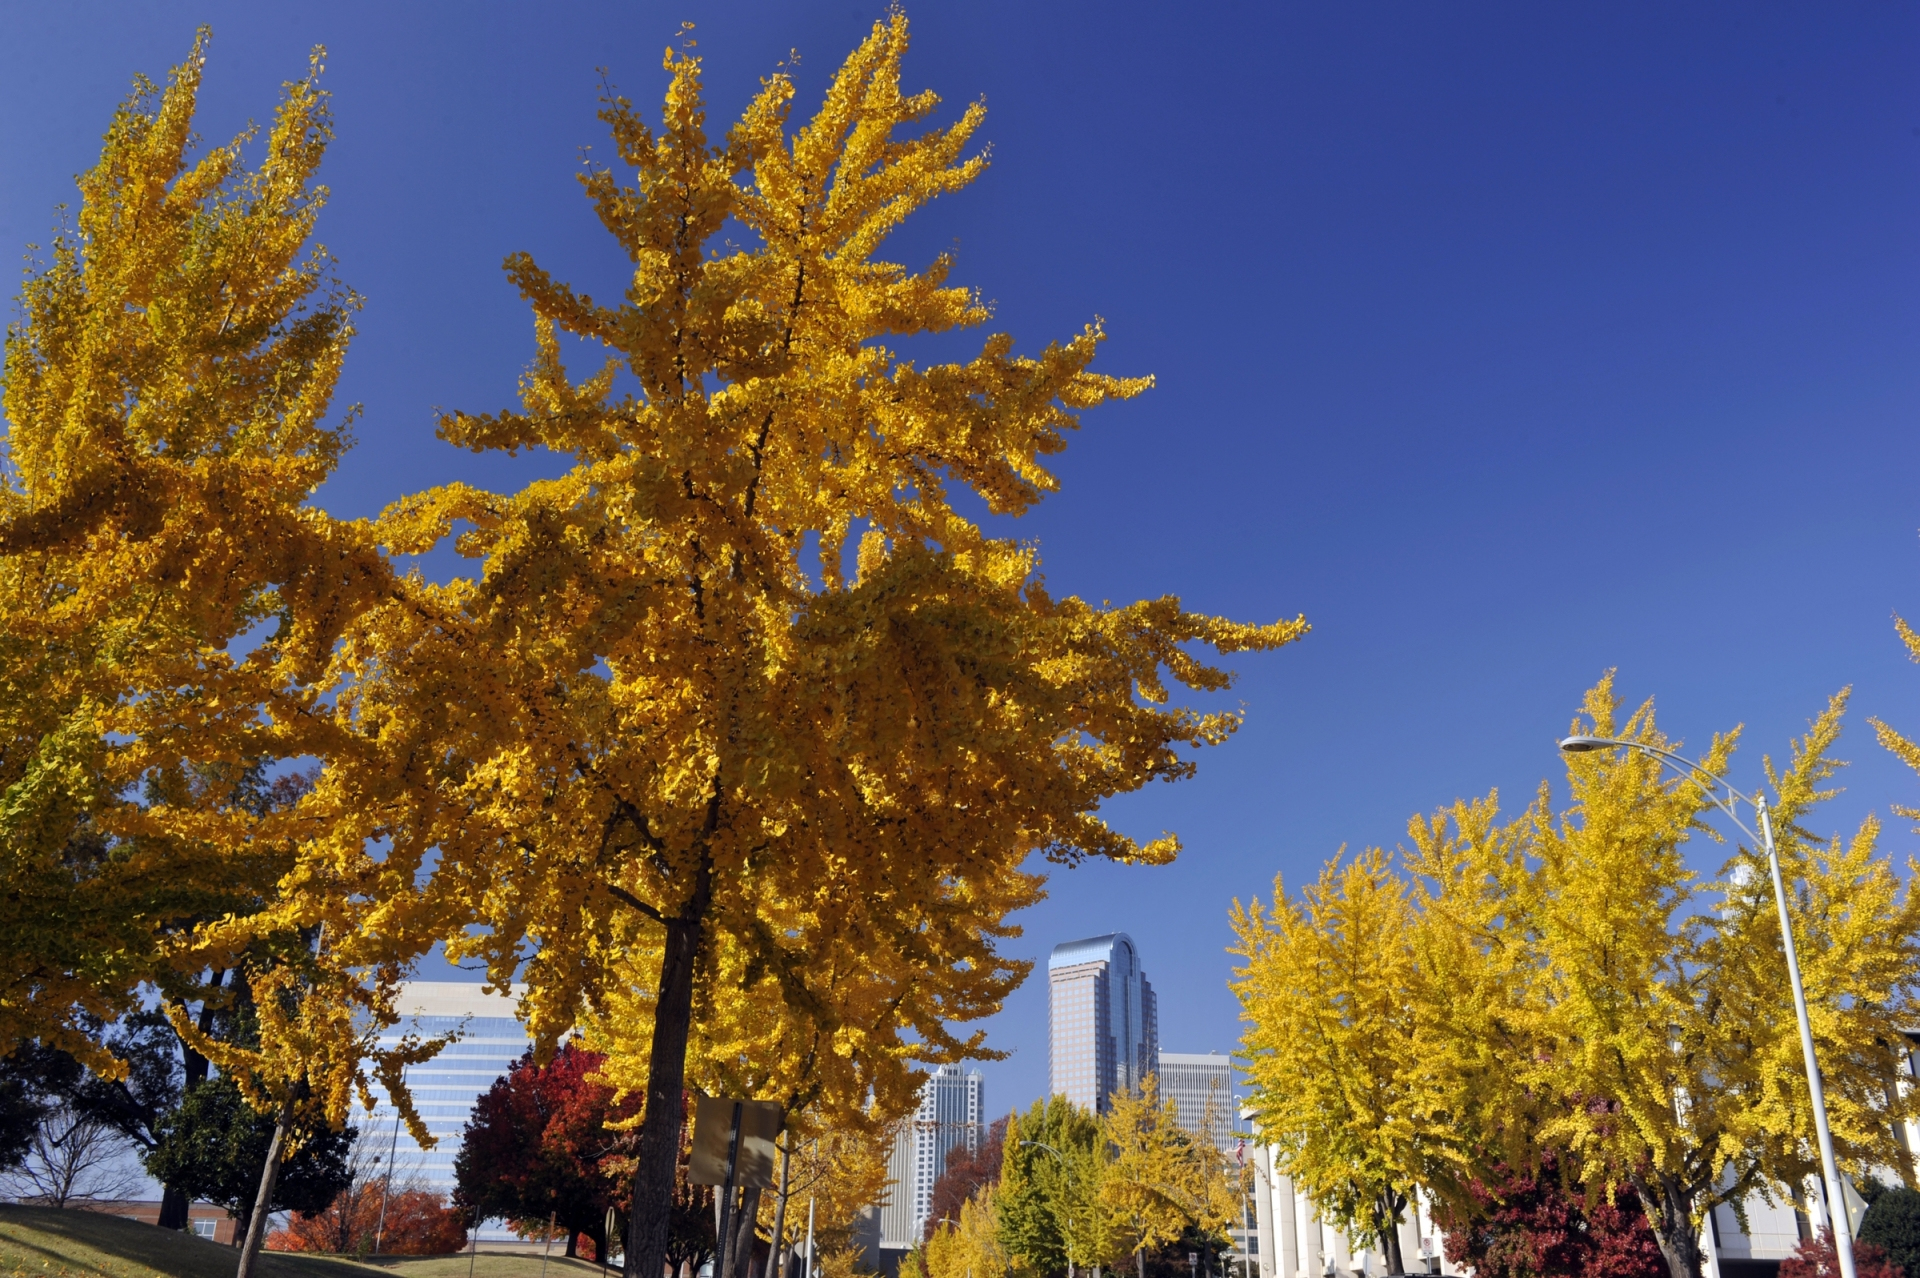 A gingko tree in uptown Charlotte. Photo: Nancy Pierce